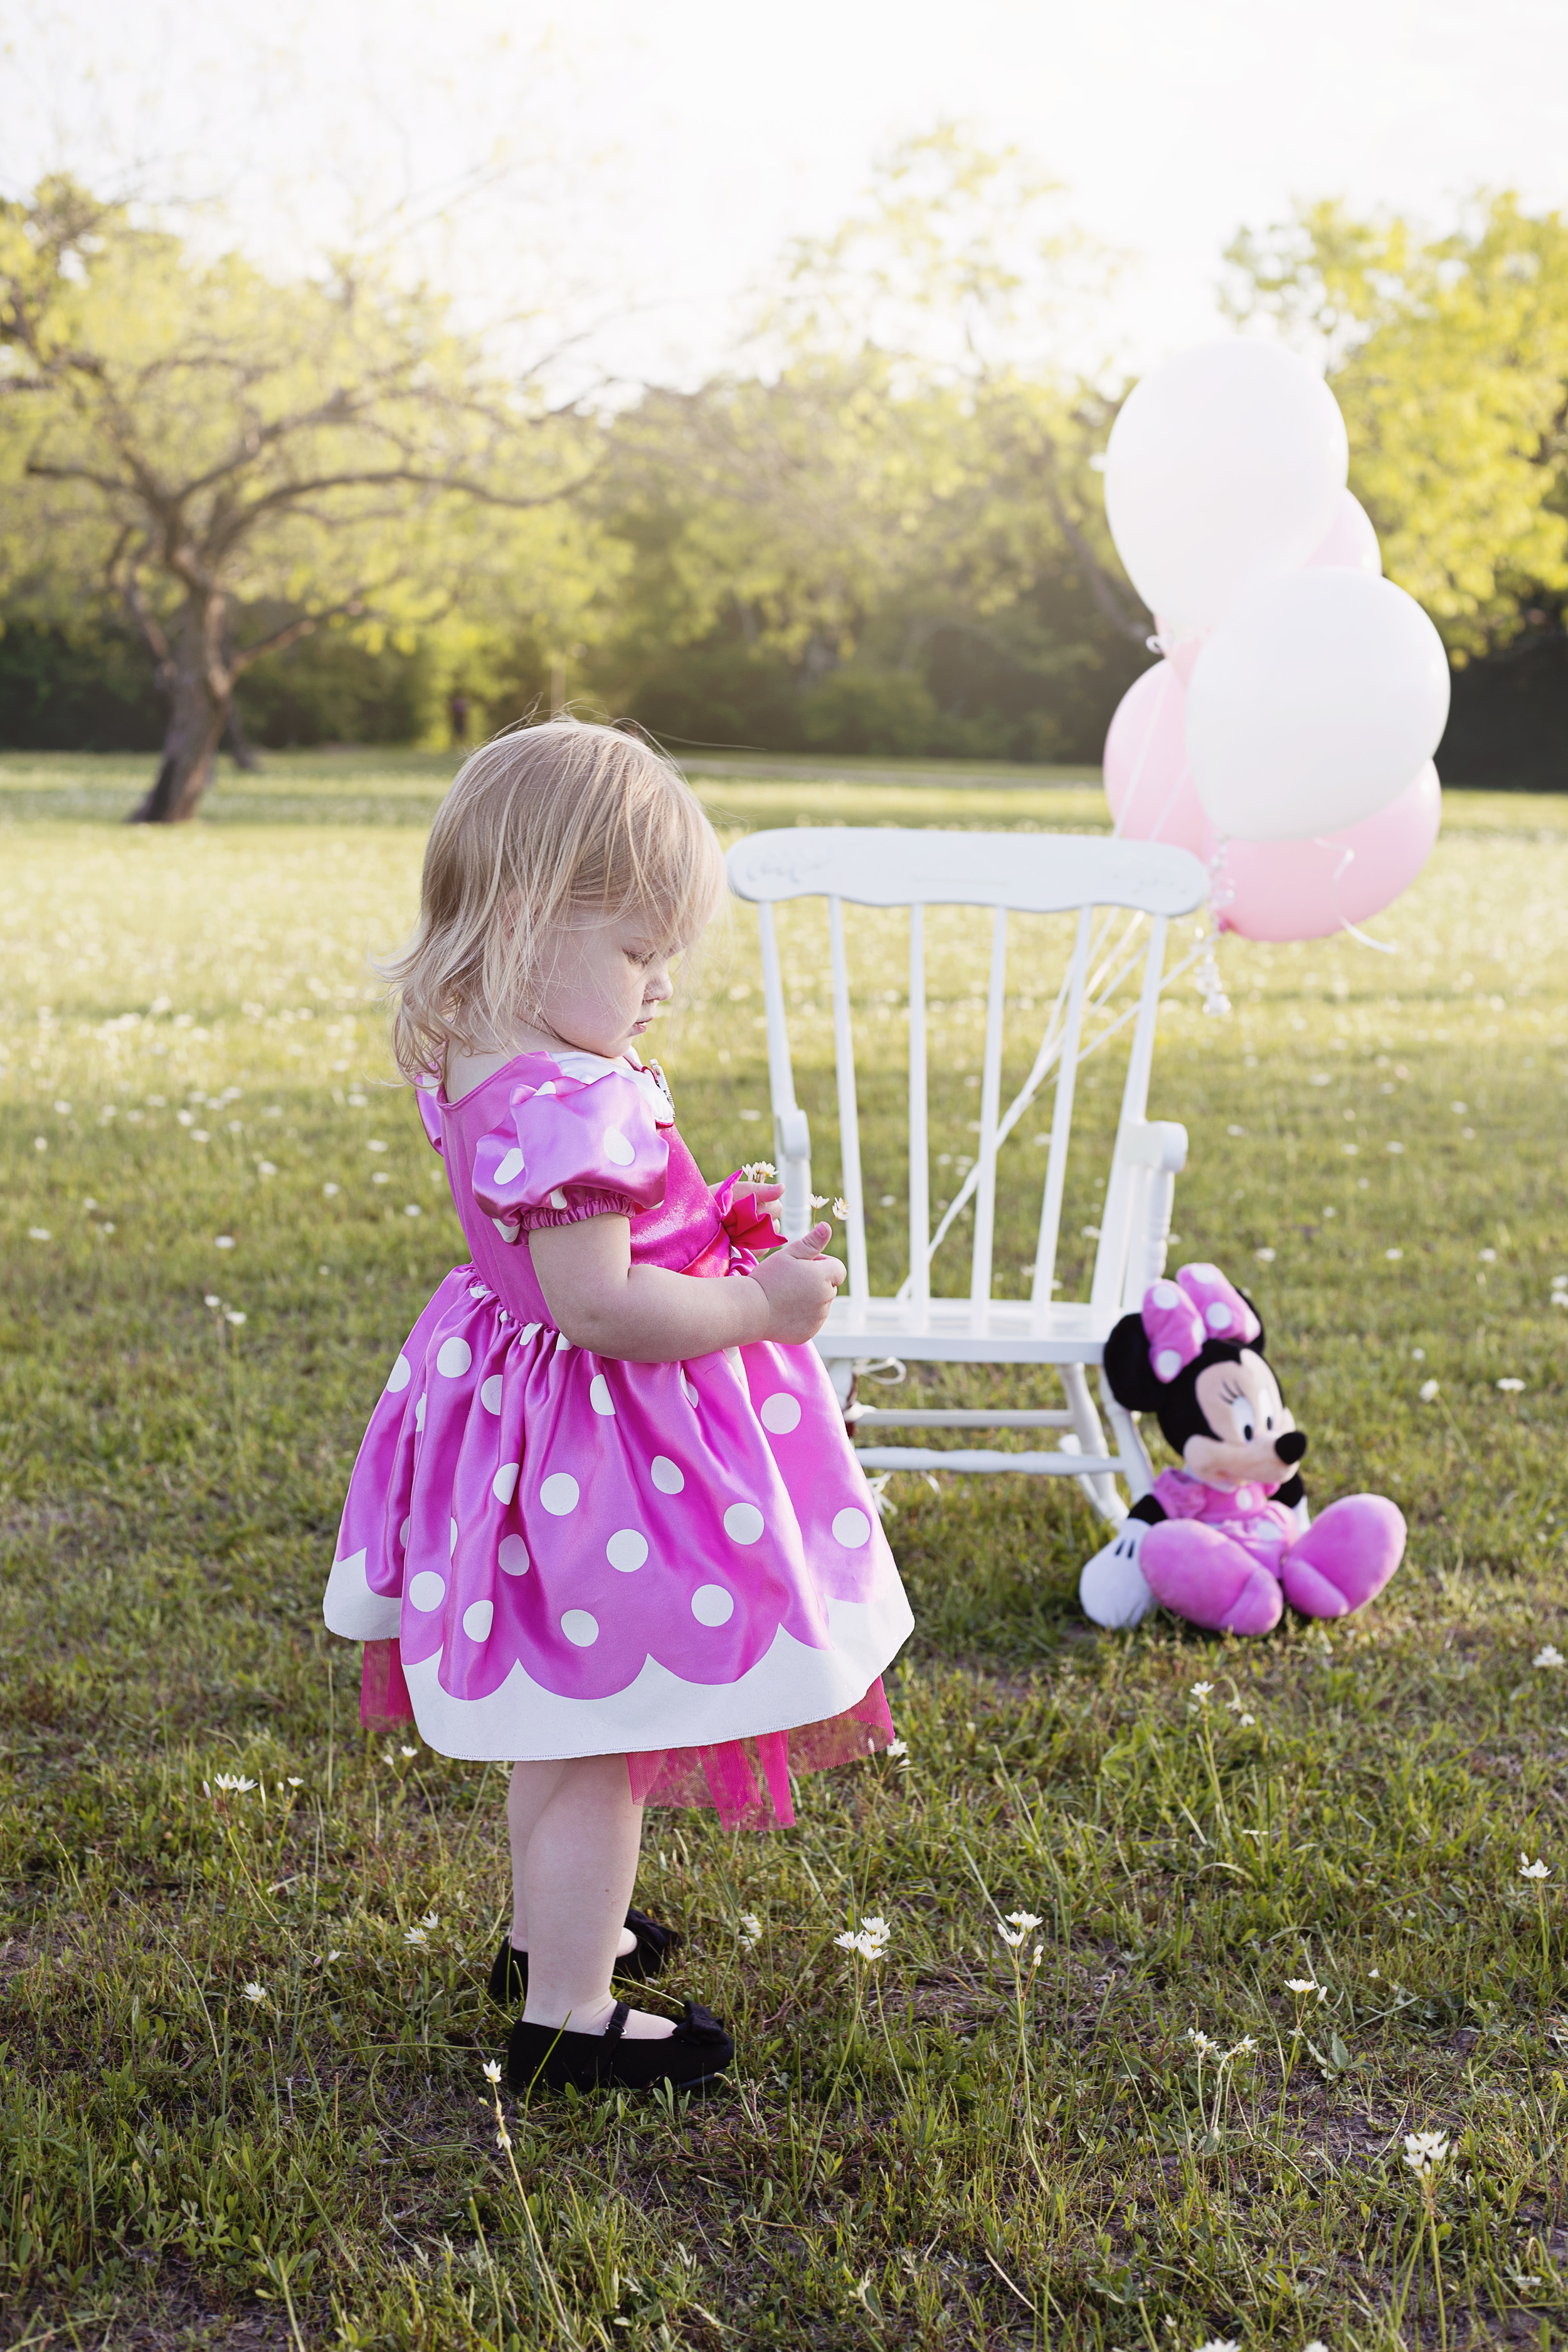 I adore this little girl and her pink dress!